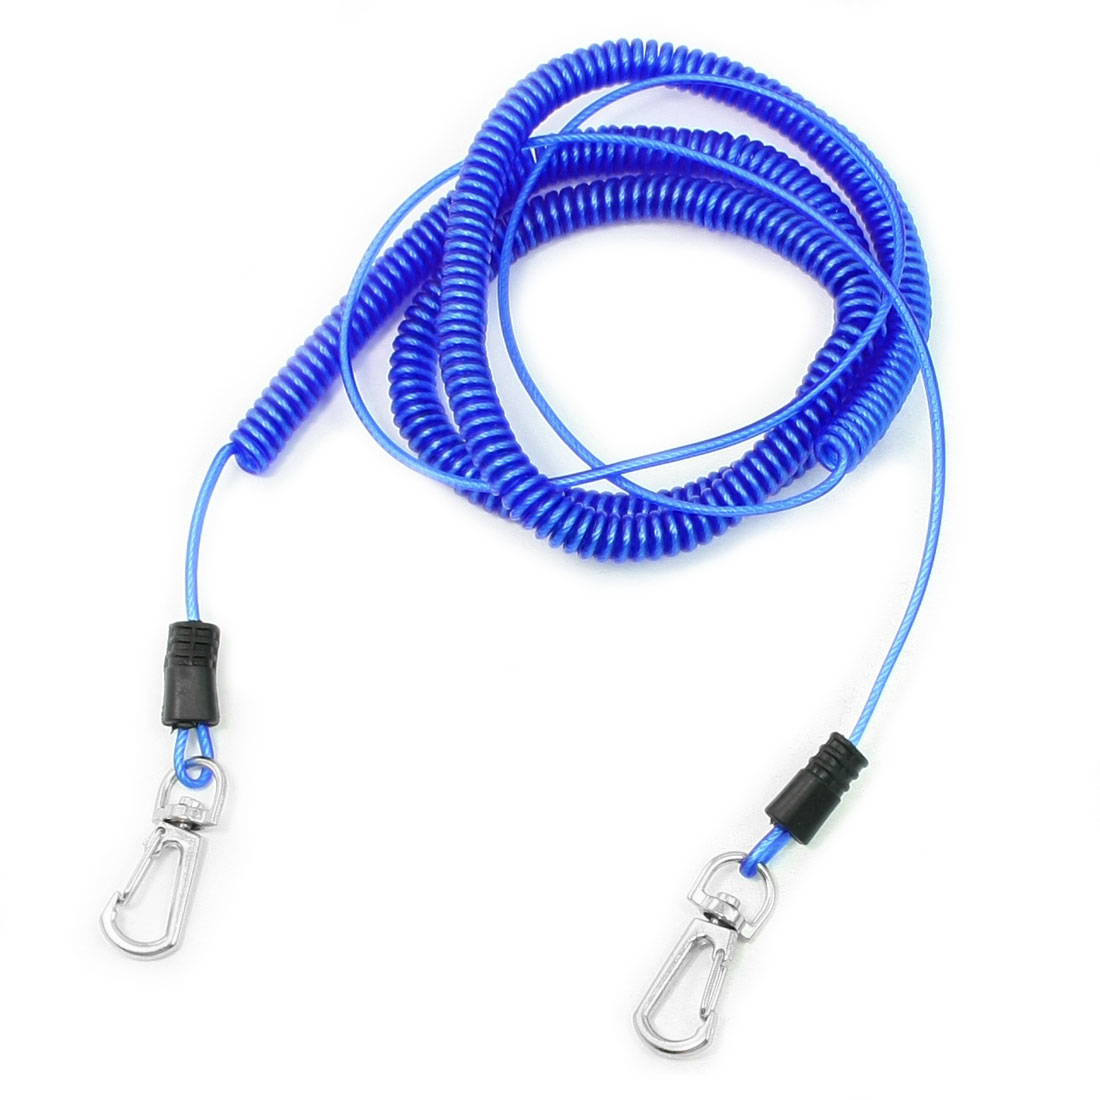 Metal Core Blue Elastic Flexible Coiled Fishinng Lanyard Cable 8M